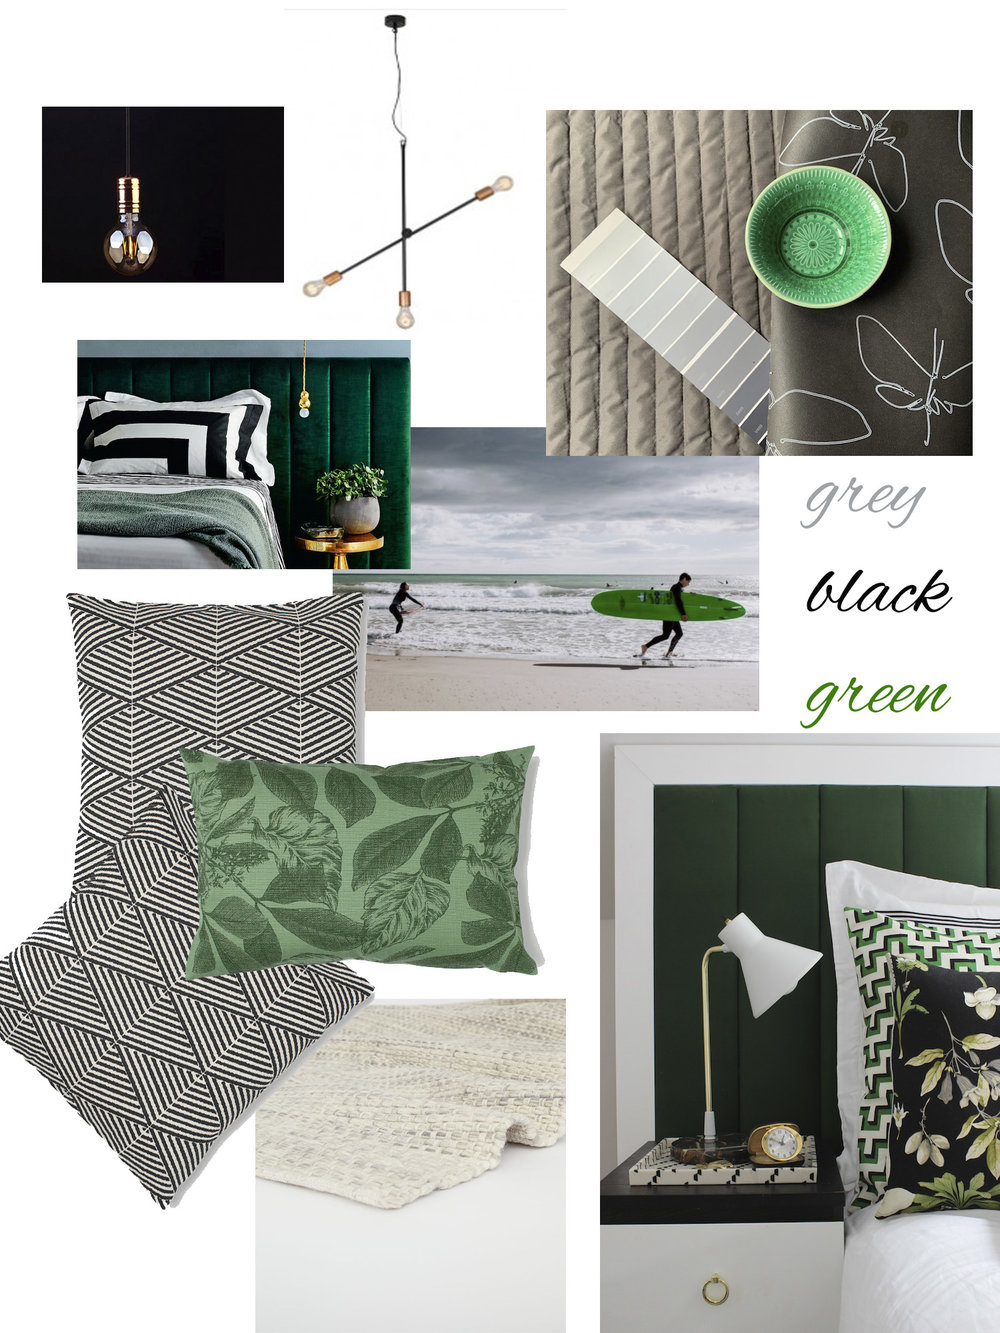 Moodboard for a guest bedroom.